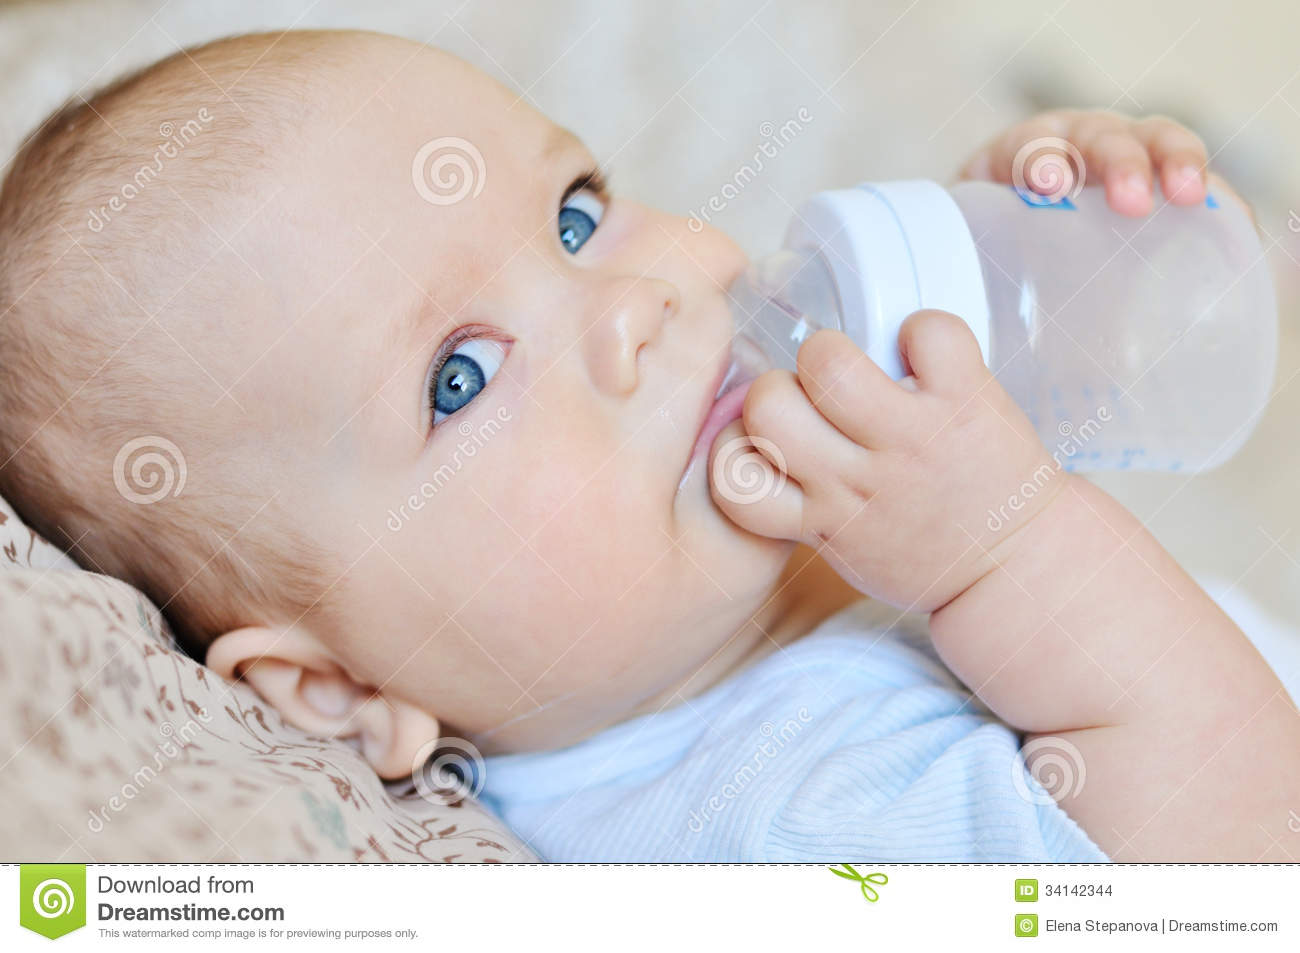 Baby Drinking Water Stock Images - Image: 34142344